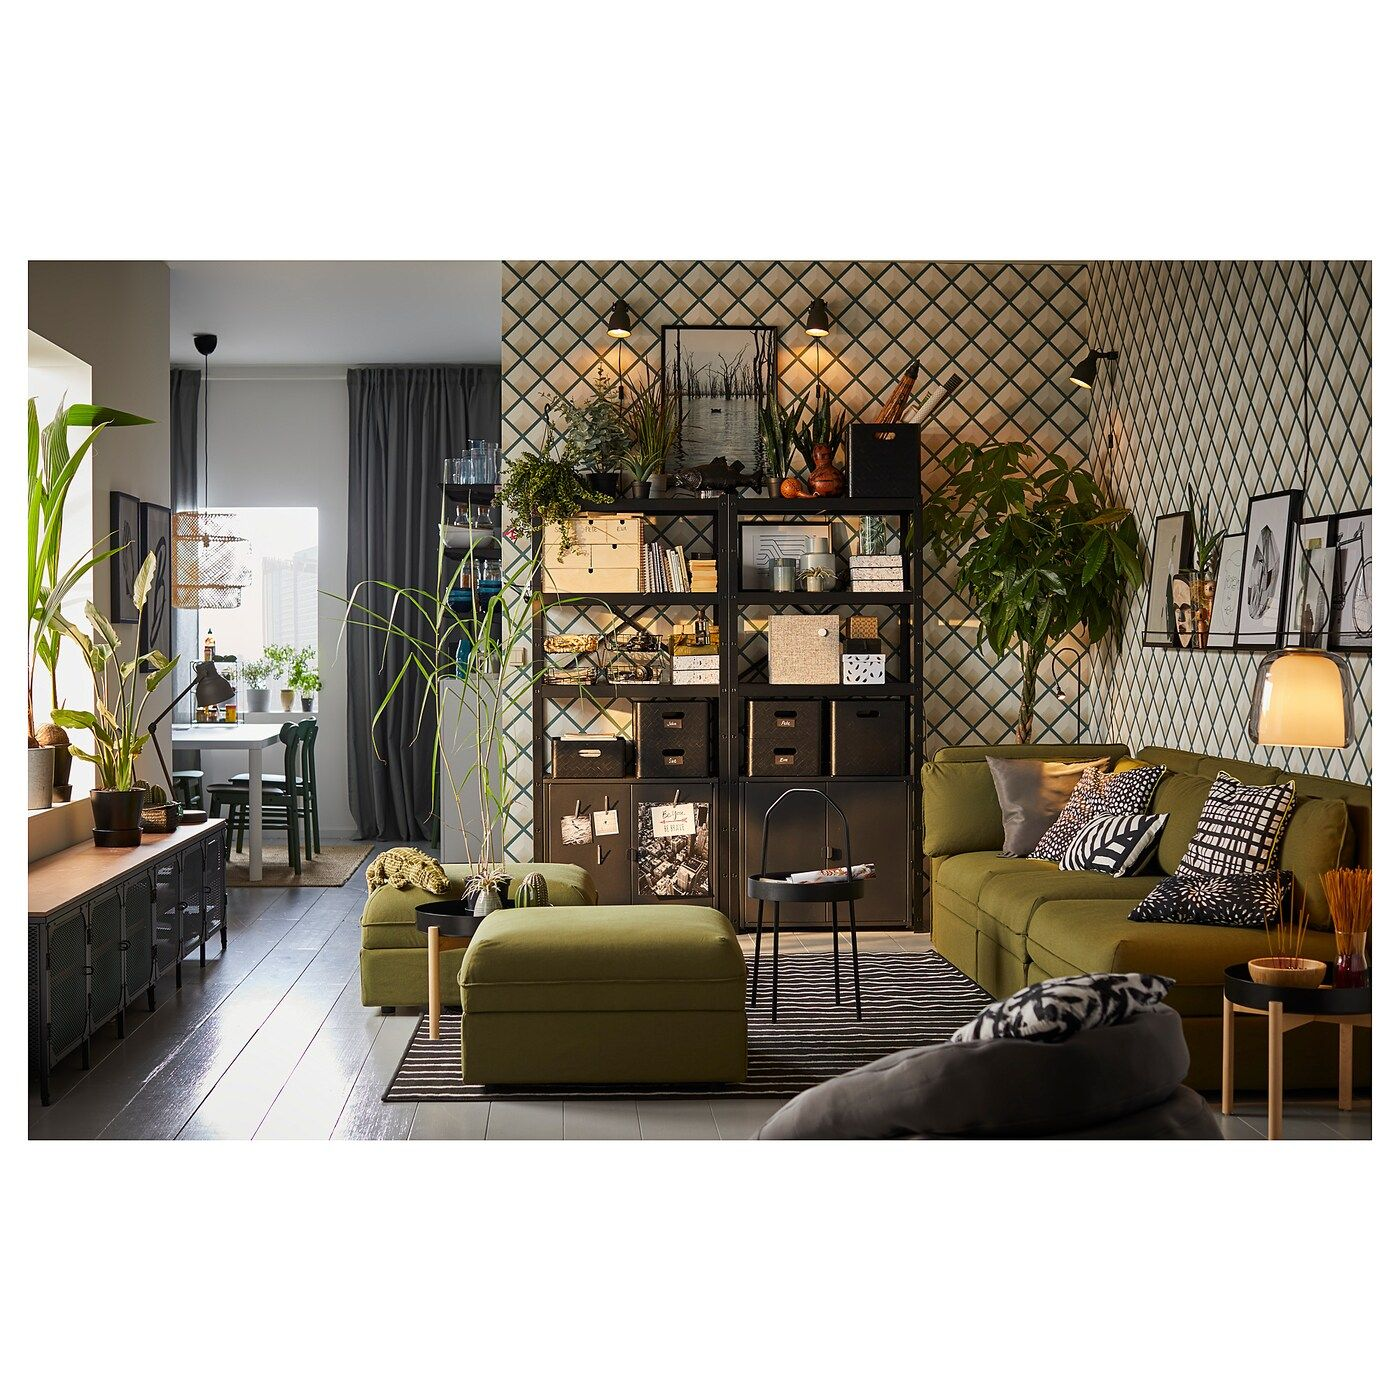 IKEA - BROR Shelving Unit With Cabinets Black